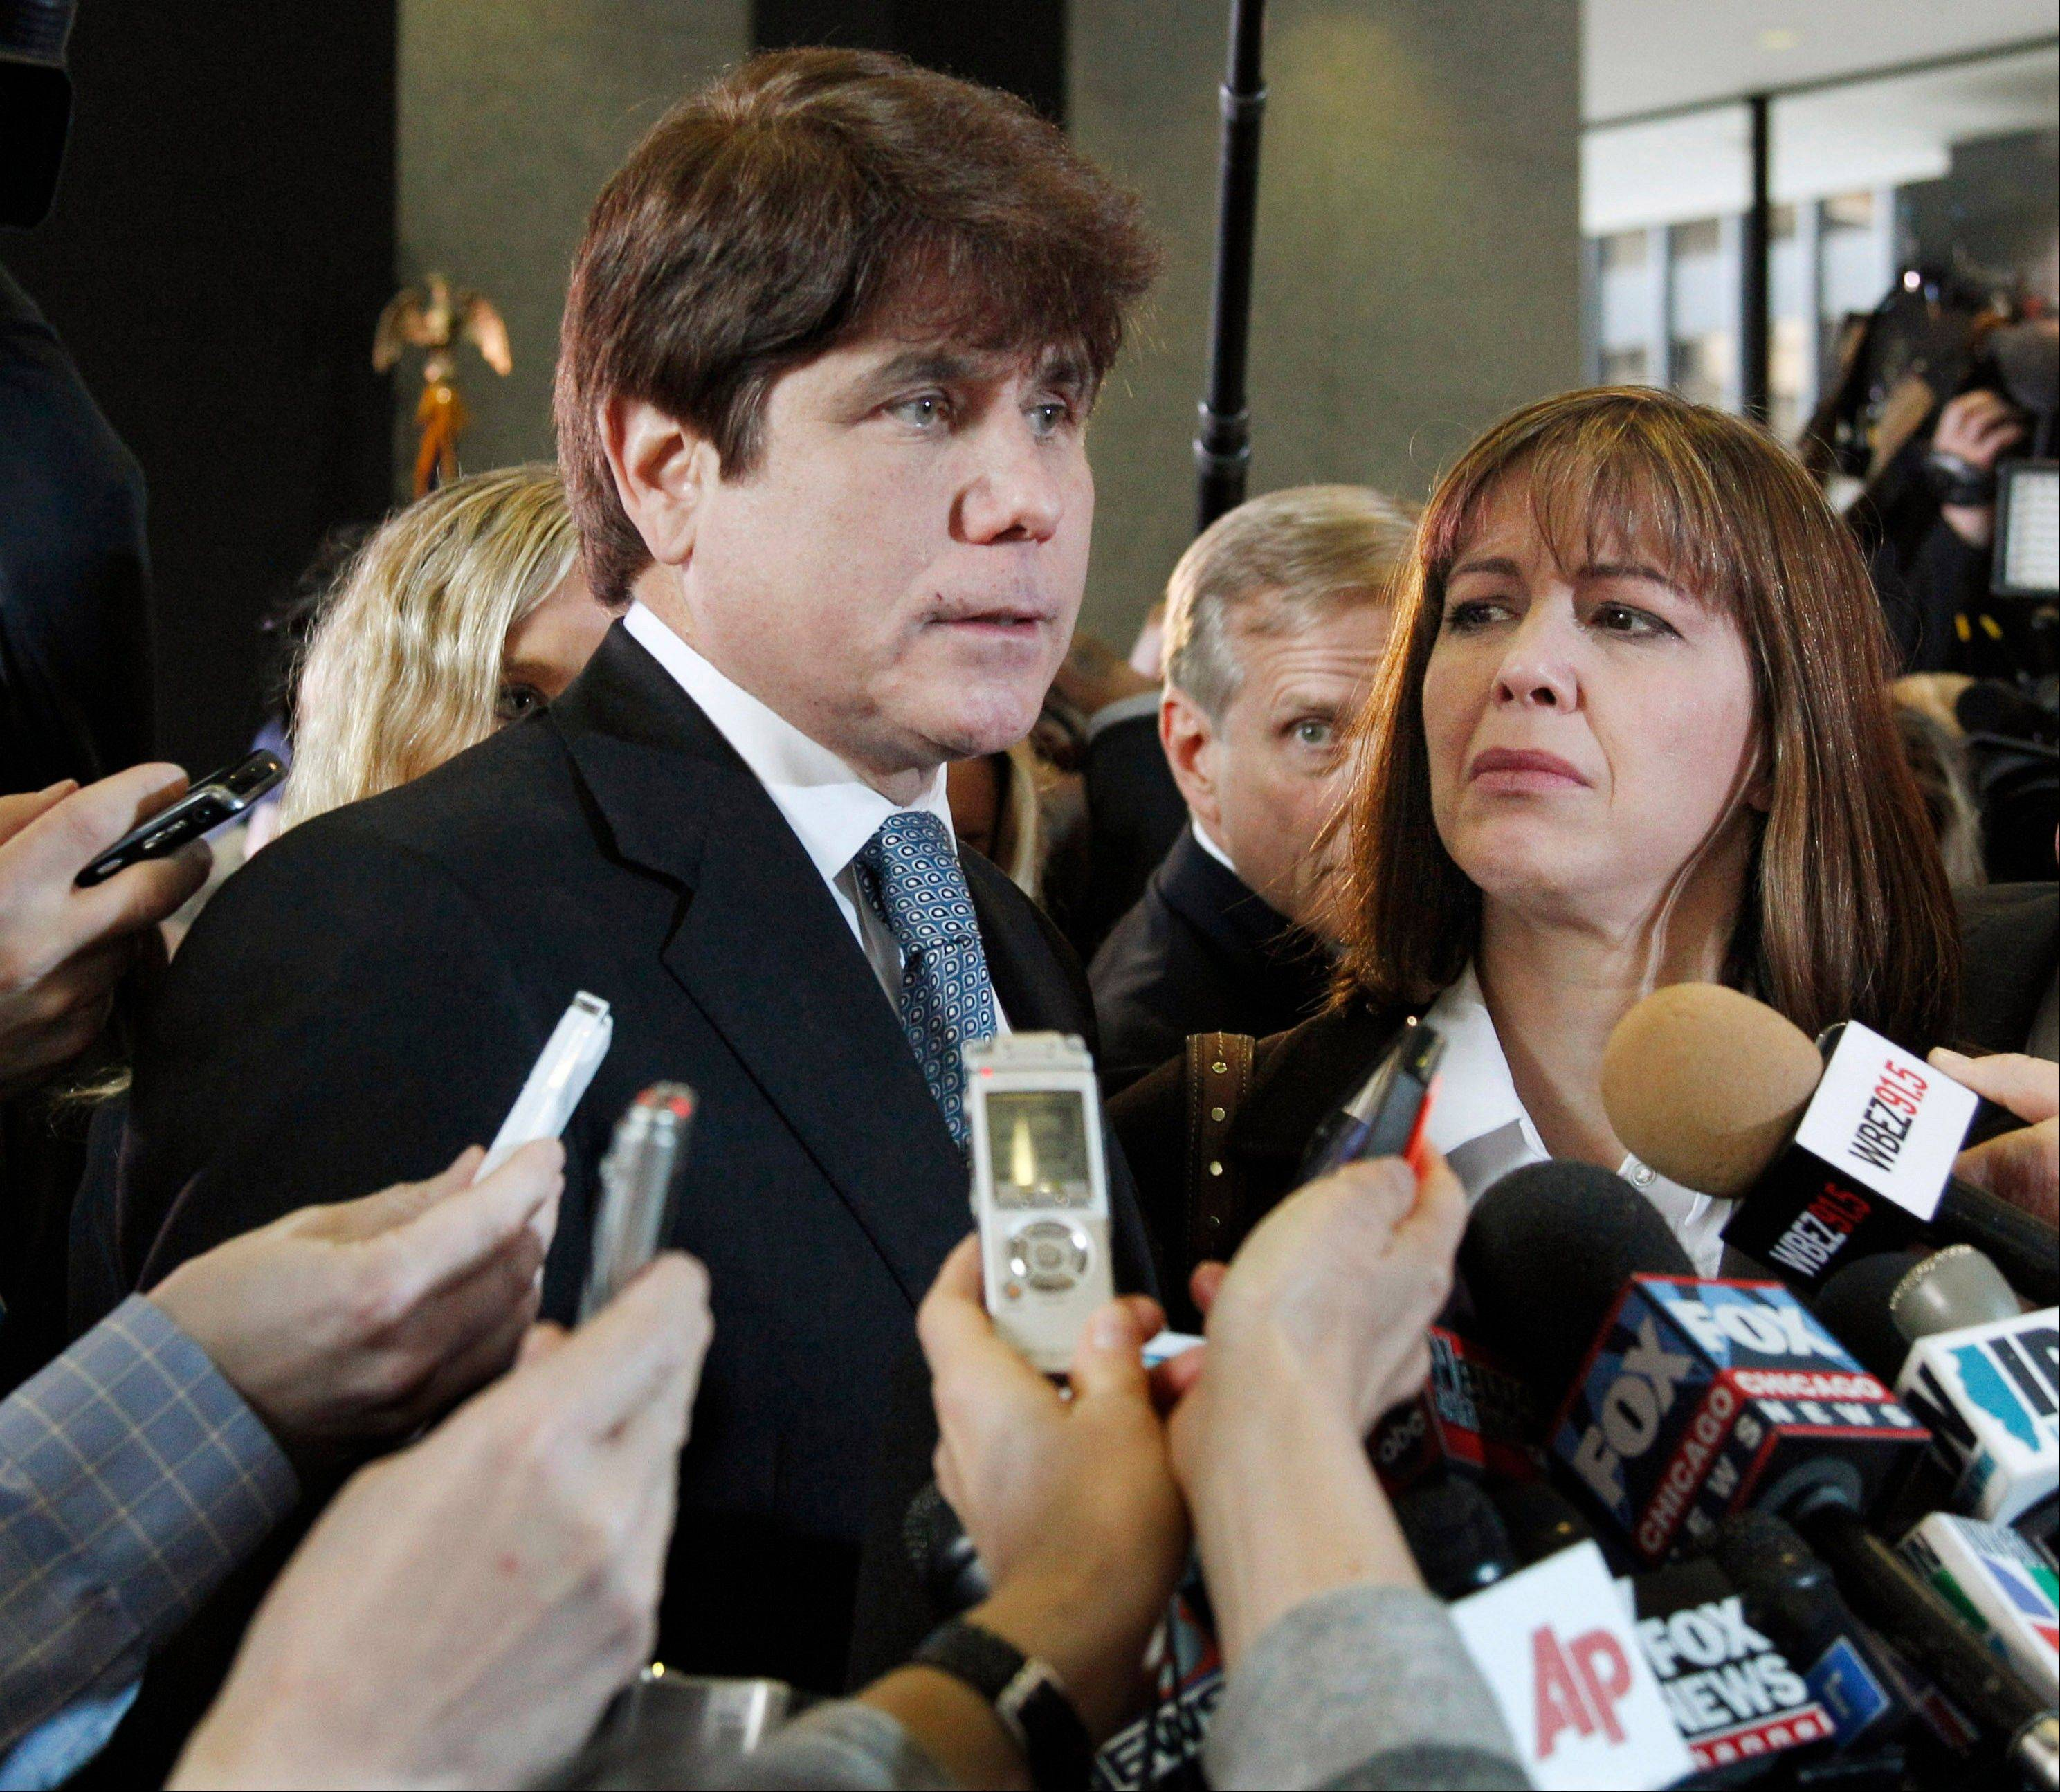 Former Gov. Rod Blagojevich speaks to reporters after he was sentenced to 14 years on 18 corruption counts.